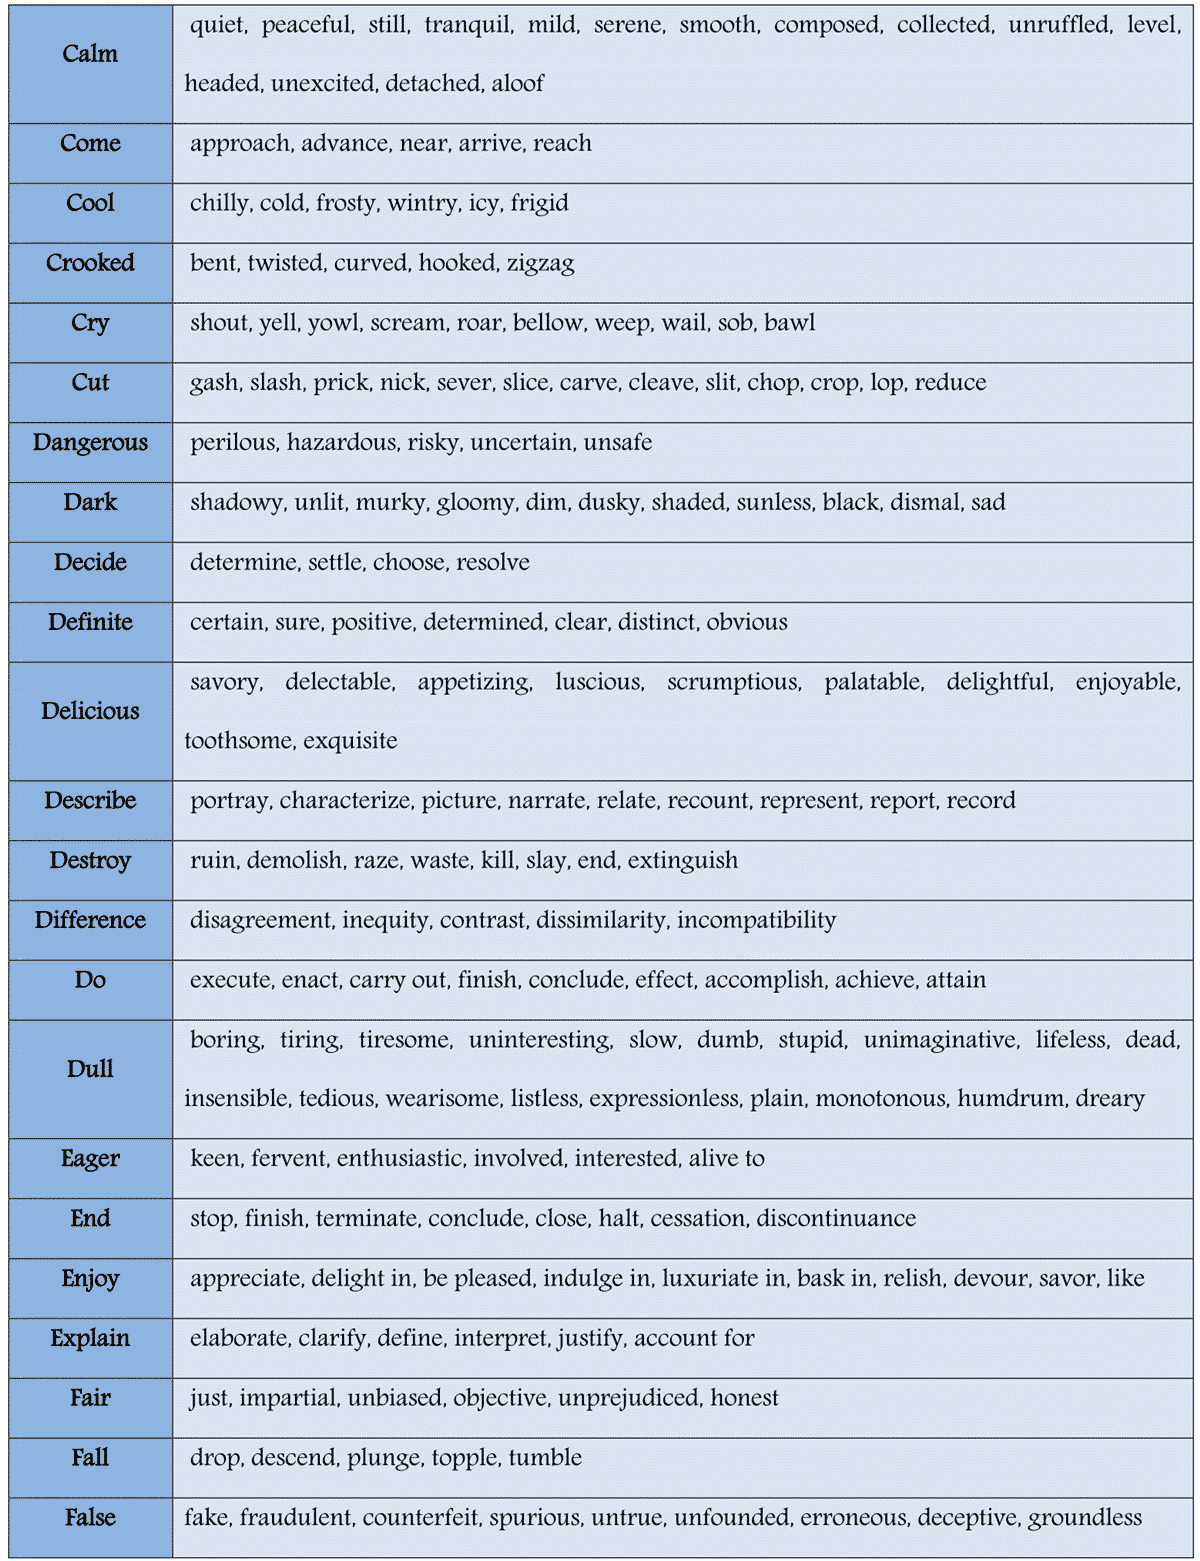 List of 100 Common Synonyms for Improving Your English 3